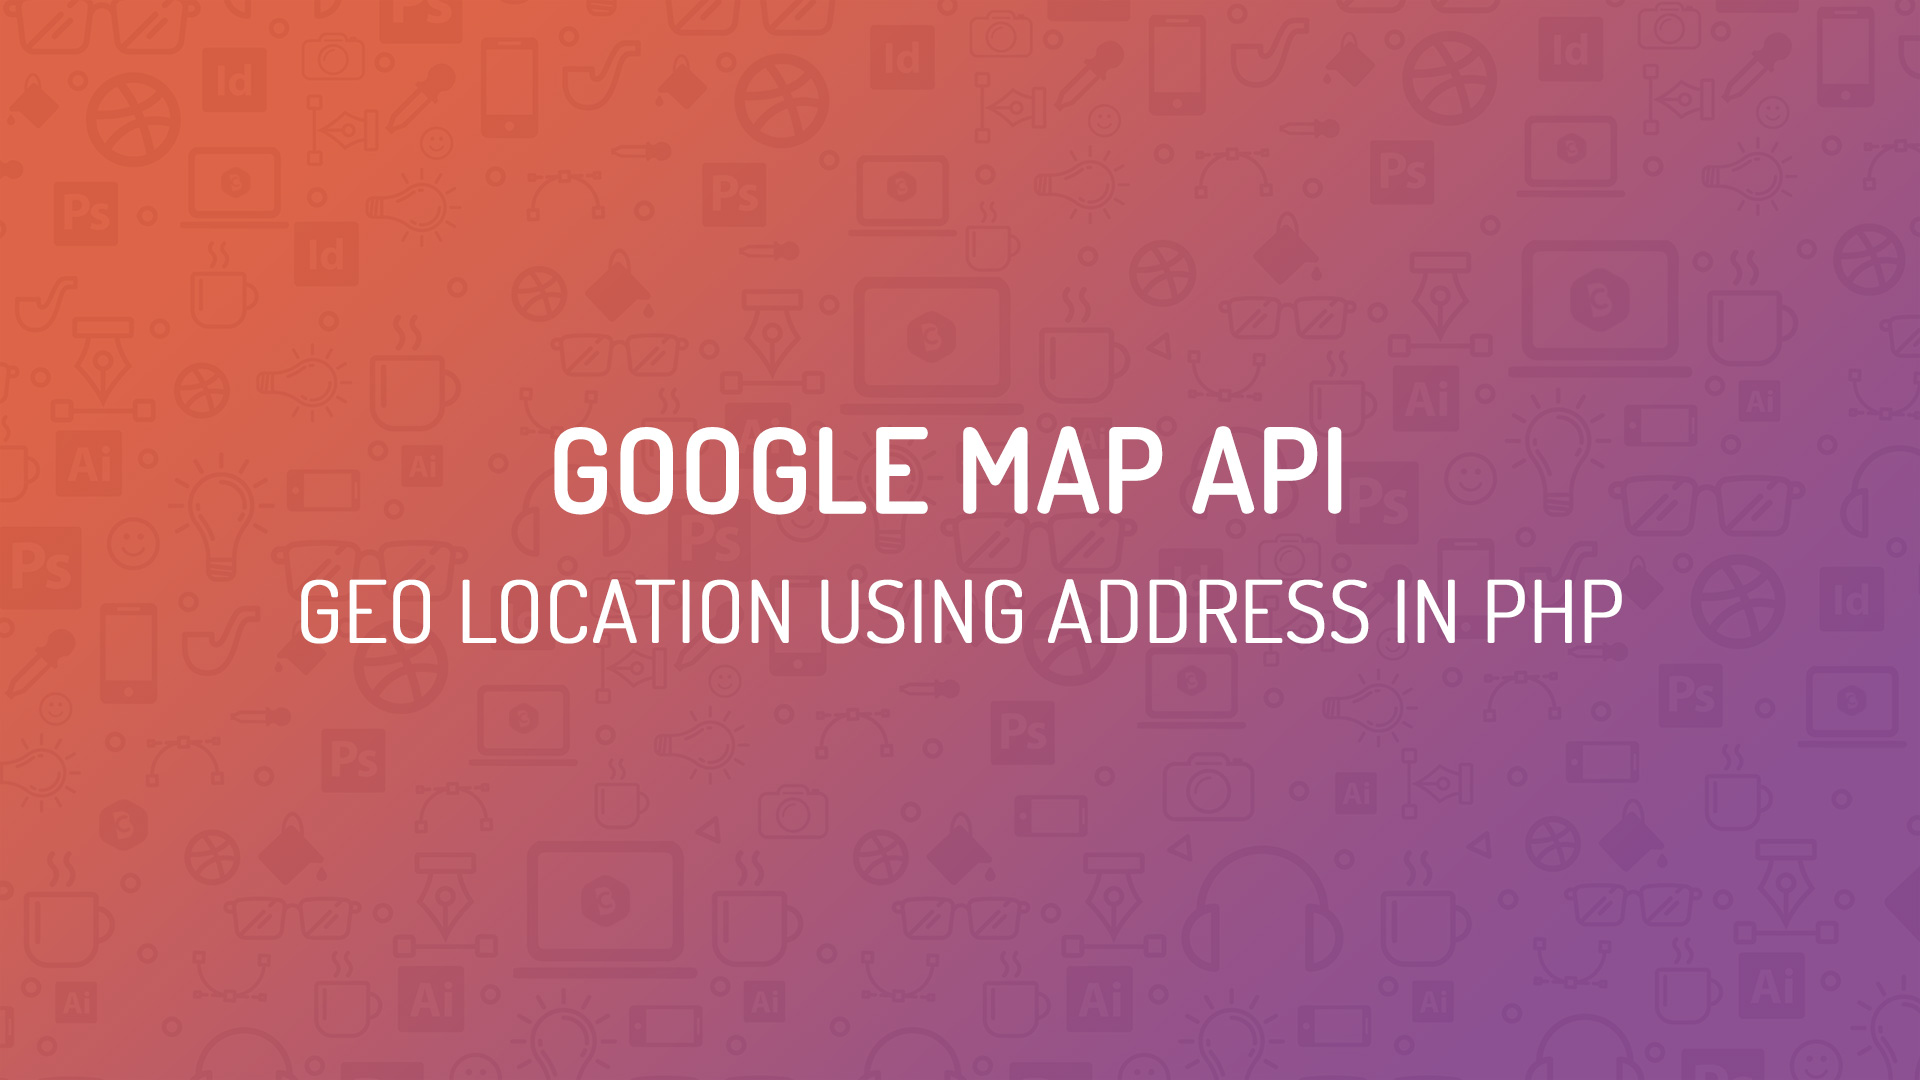 Google Map API - Geo Location using Address in PHP - Code Briefly